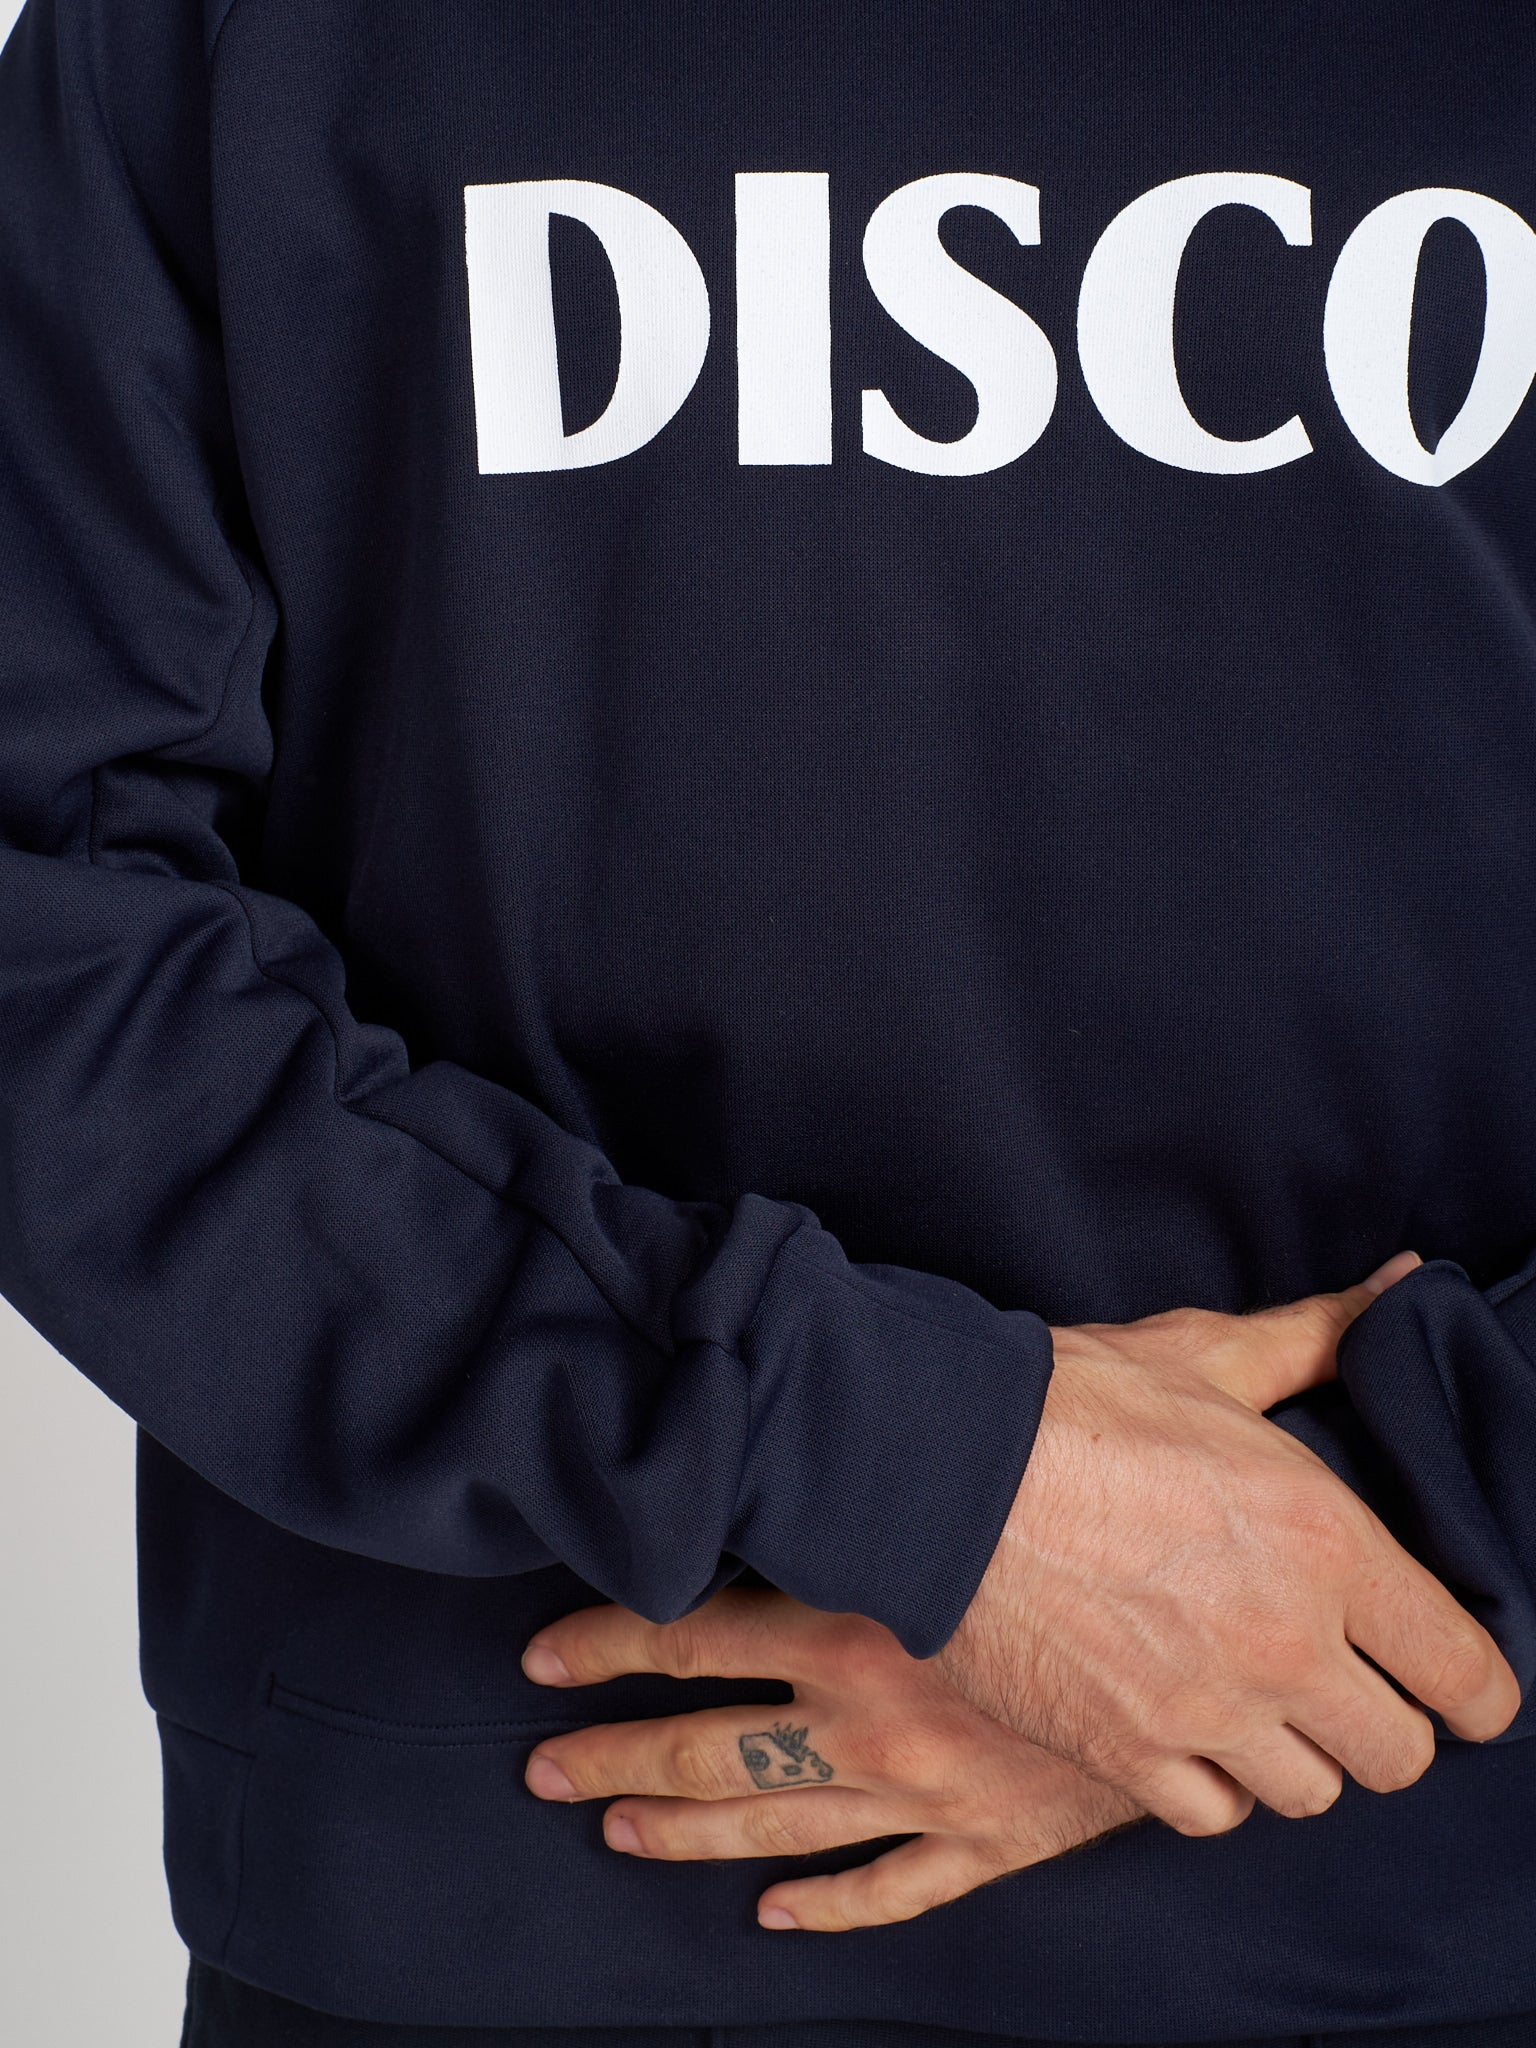 Disco Tracksuit Sweater